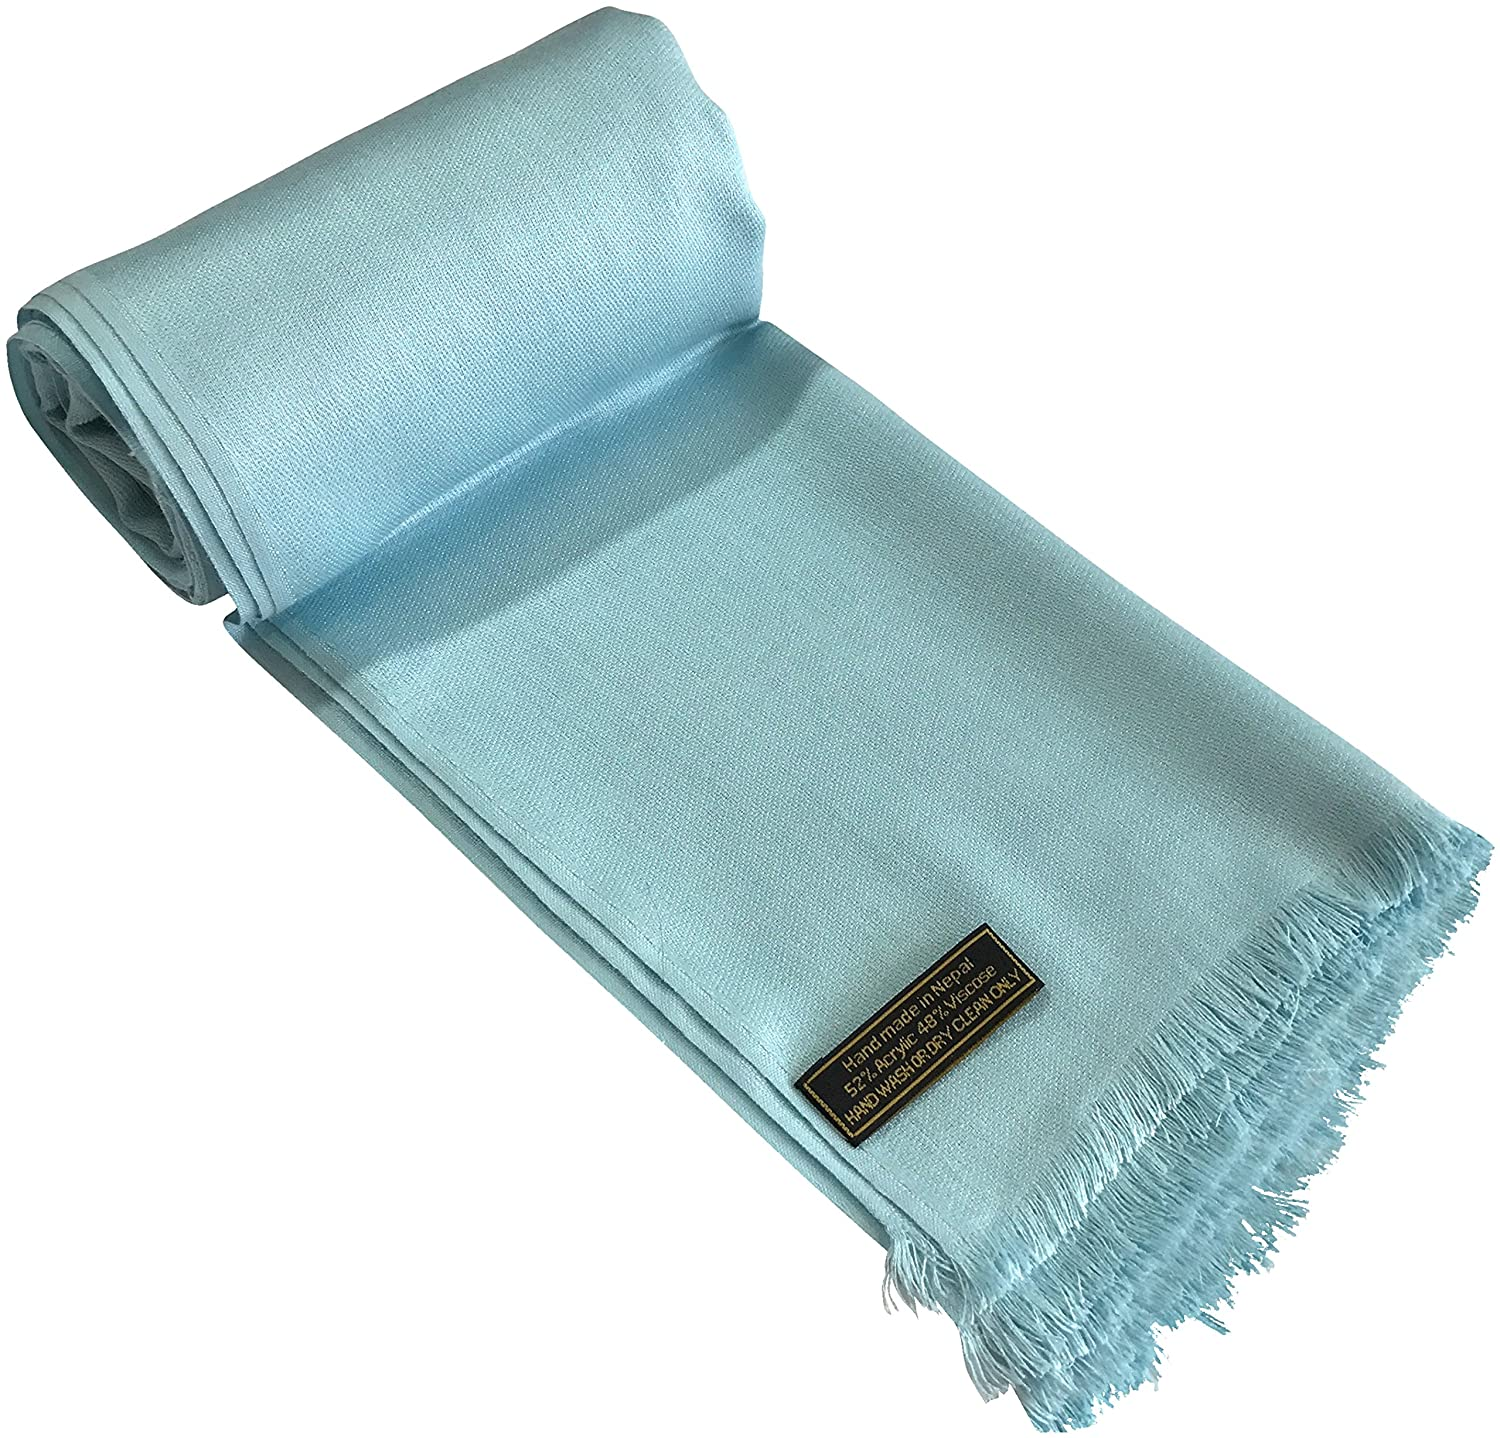 CJ Apparel Baby Blue Solid Color Design Nepalese Fringe Shawl Pashmina Scarf Seconds NEW